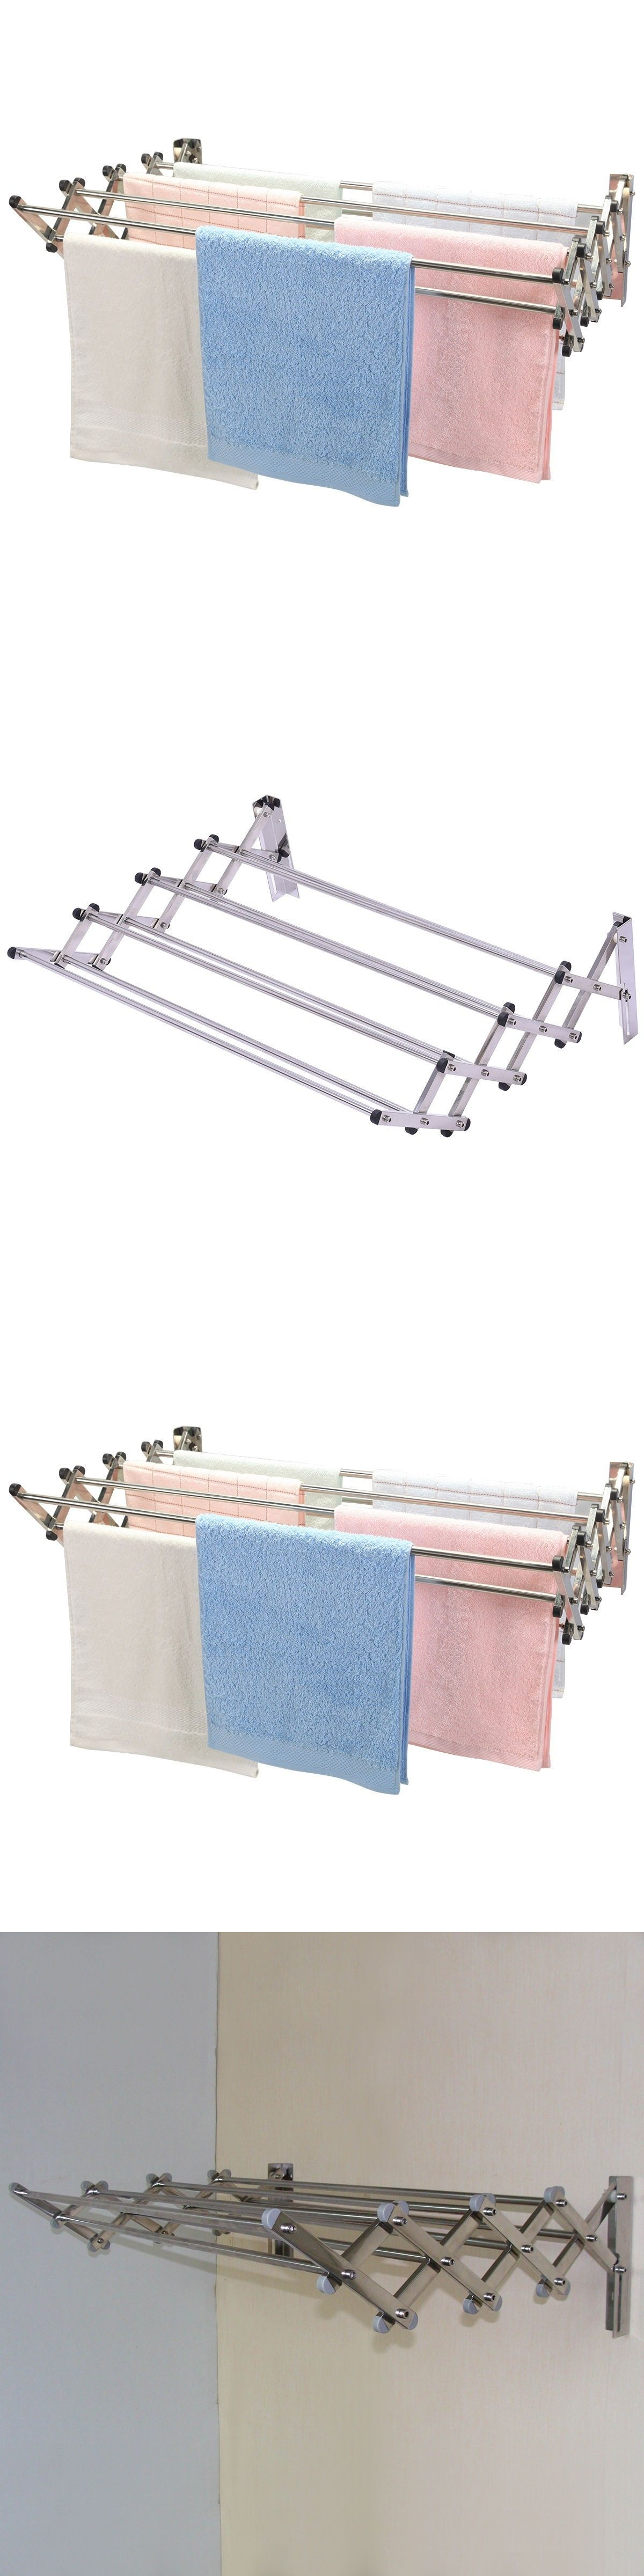 Clotheslines and laundry hangers stainless steel wall mount